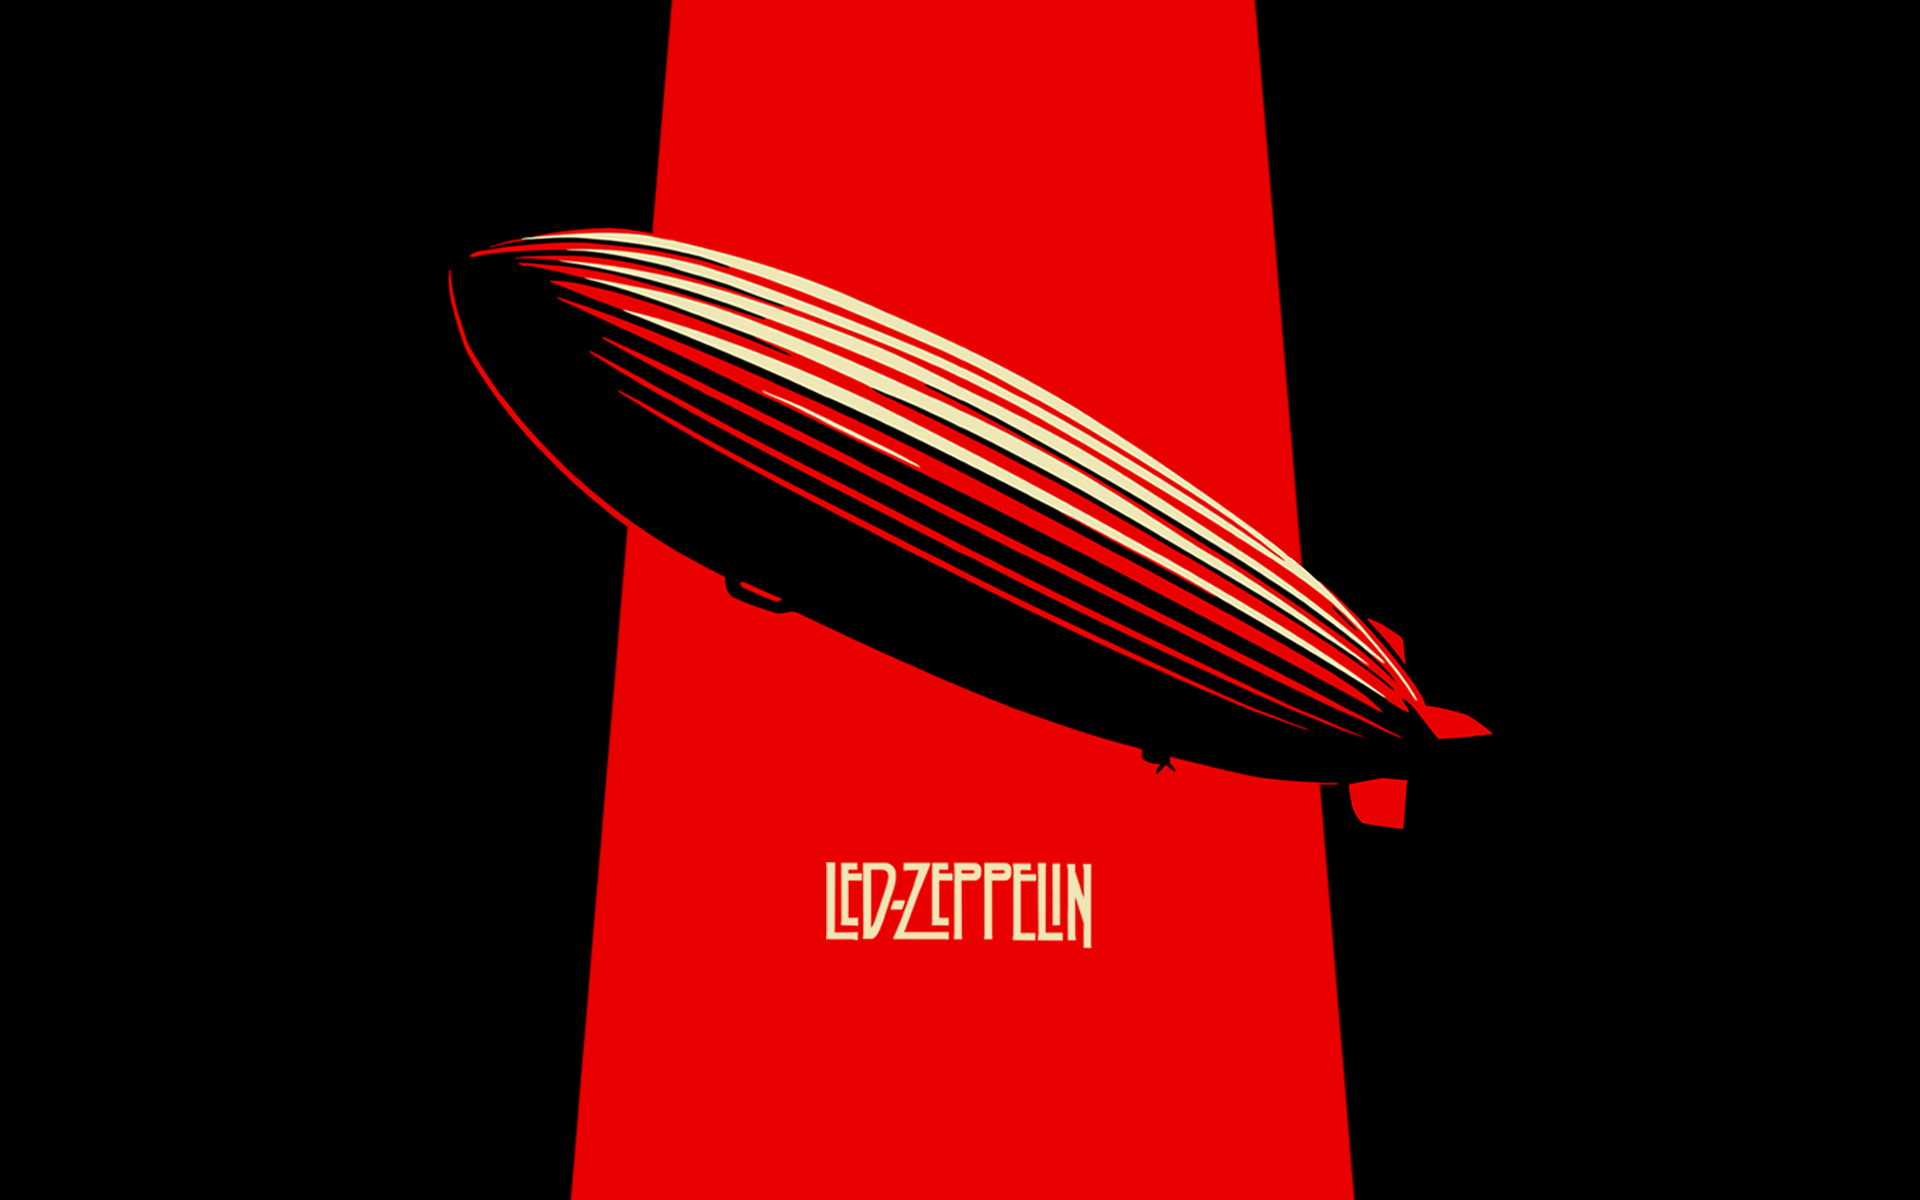 led zeppelin wallpaper - photo #4